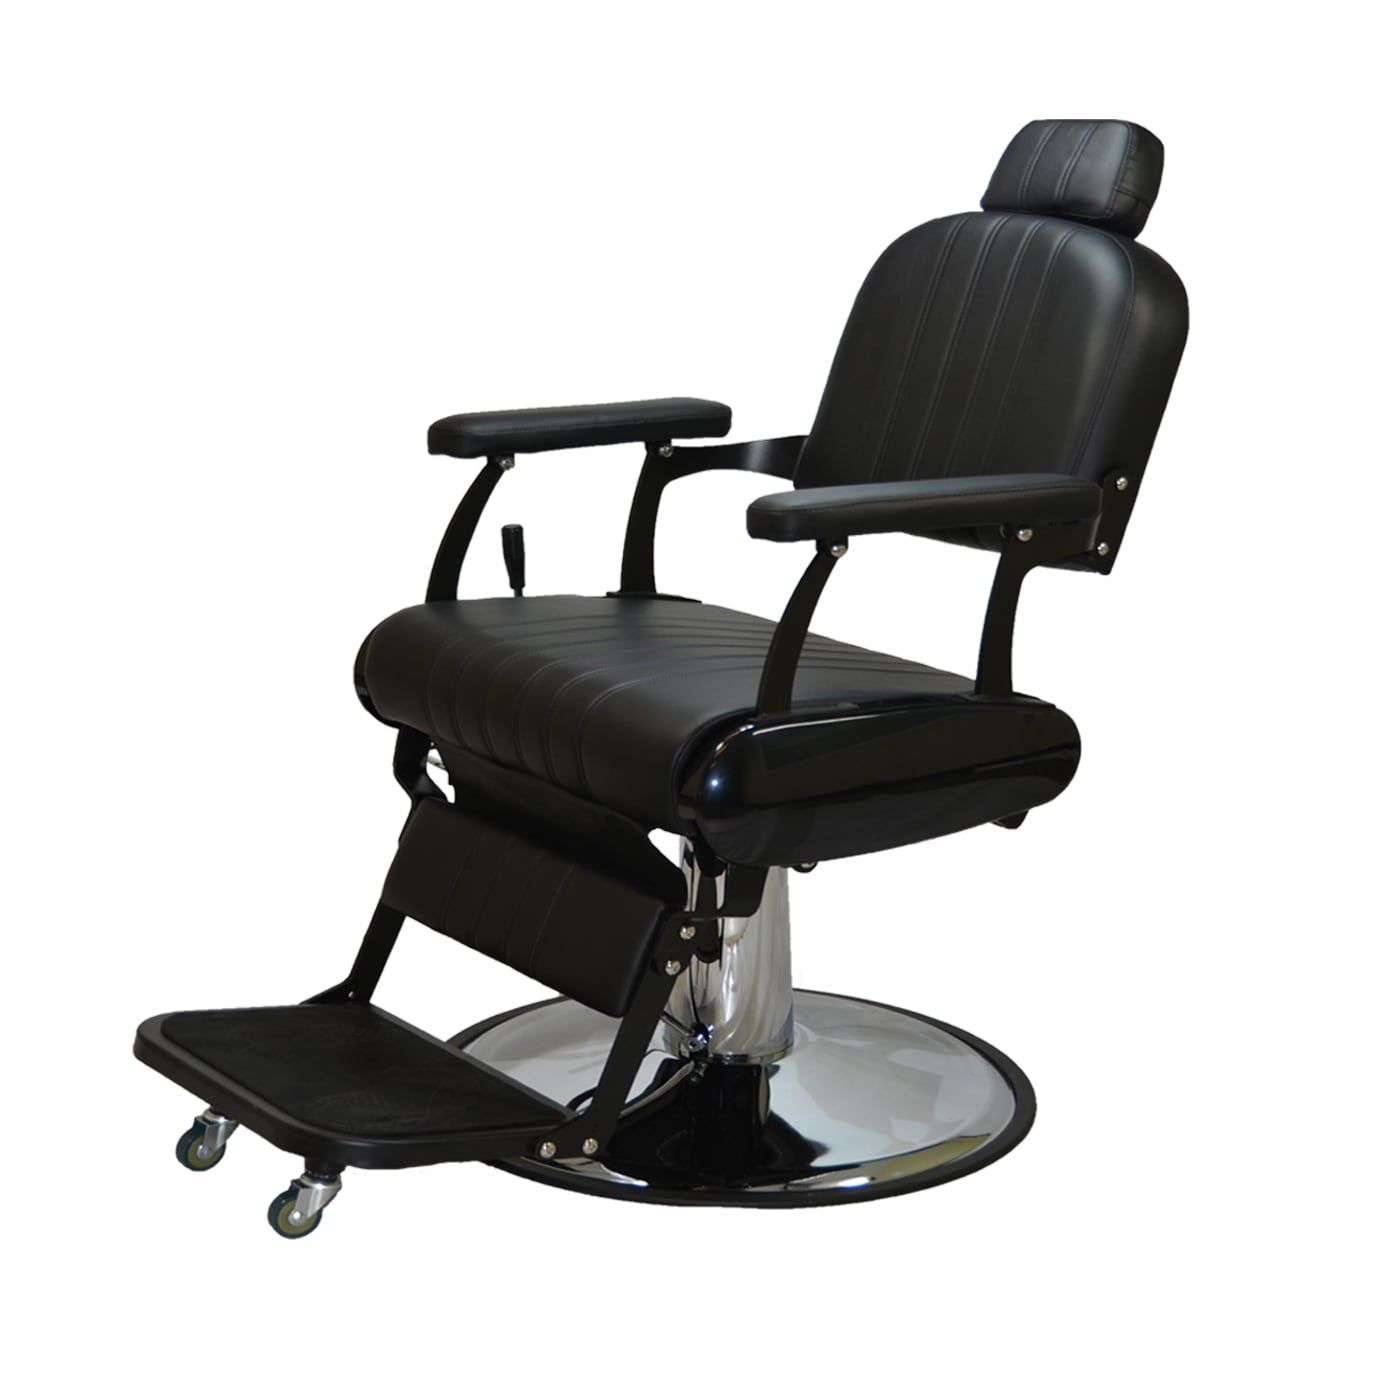 Beauty Salon Chair Lcl Beauty Extra Large Classic Style Reclining Hydraulic Salon Chair